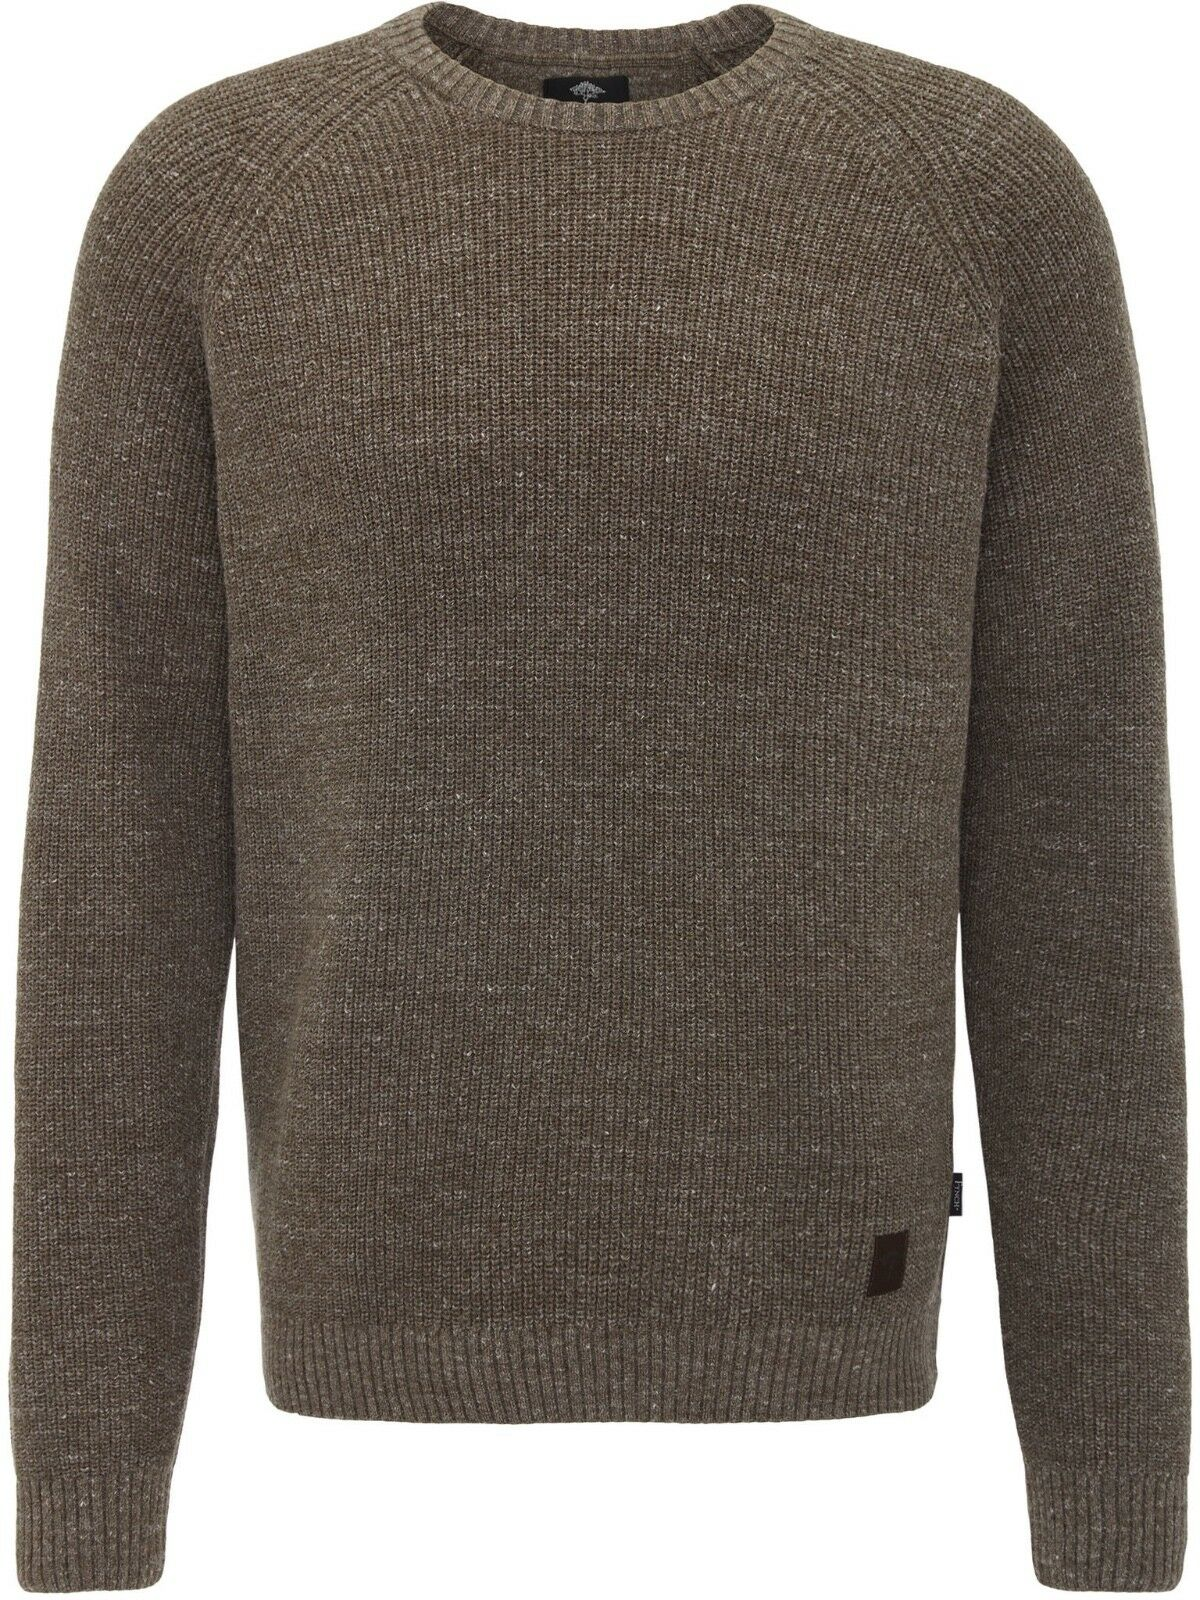 FYNCH HATTON® Chunky Cotton/Merino Jumper Clay - Large New AW18